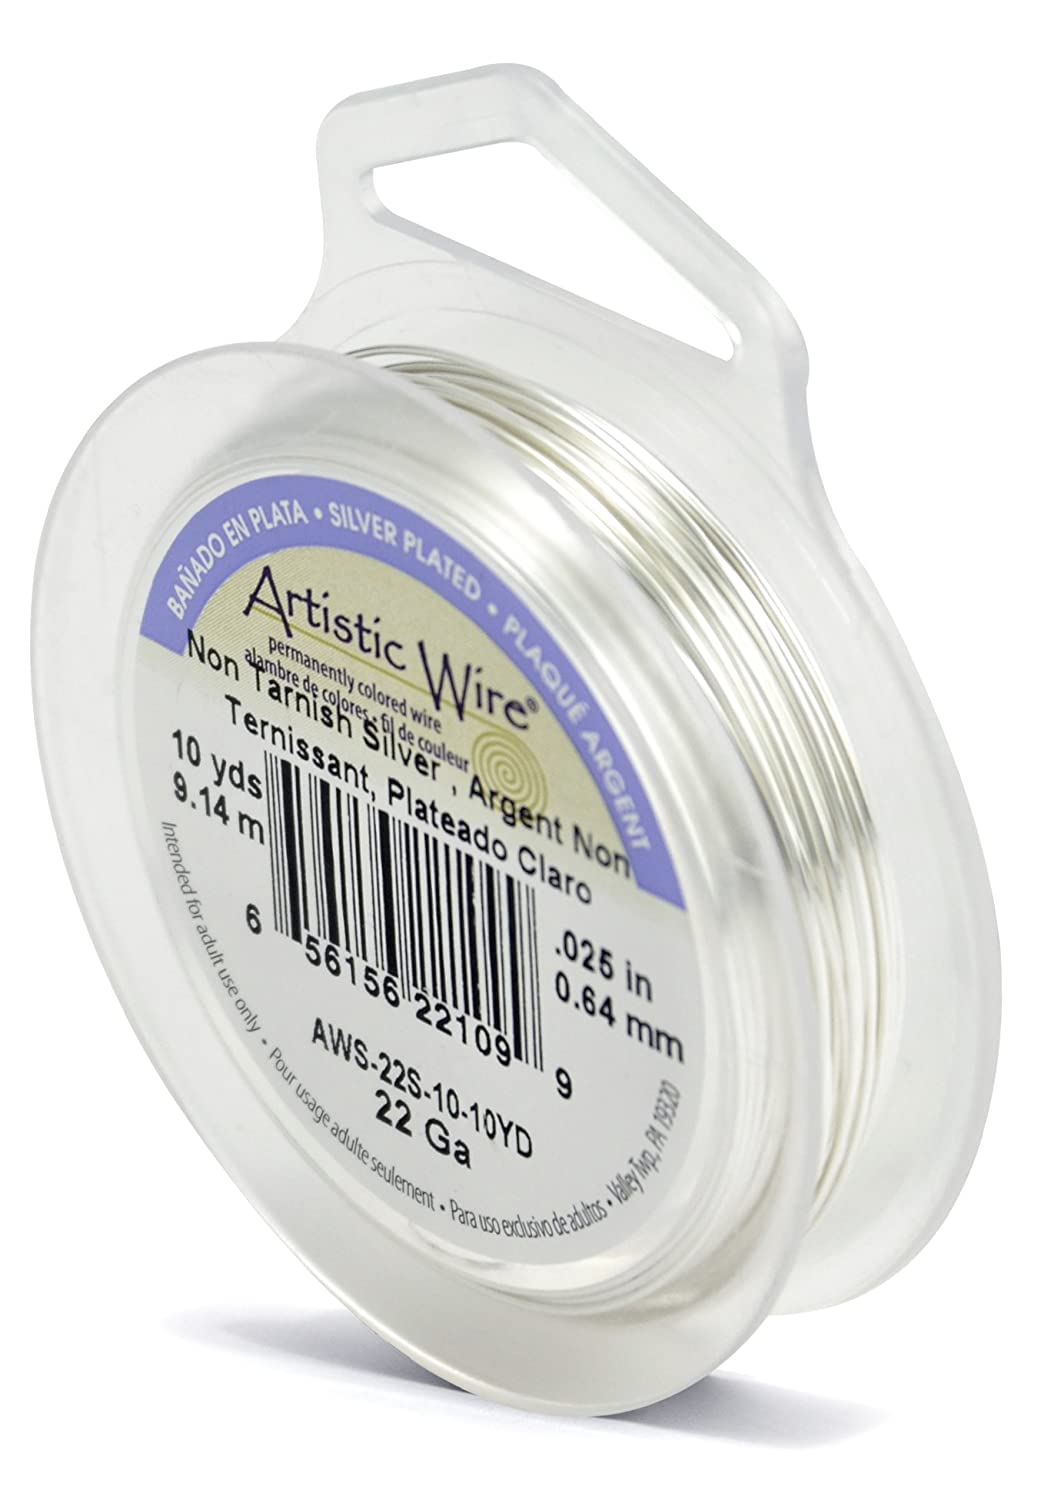 Amazon.com: Artistic Wire 22-Gauge Tarnish Resistant Silver Wire, 10 ...